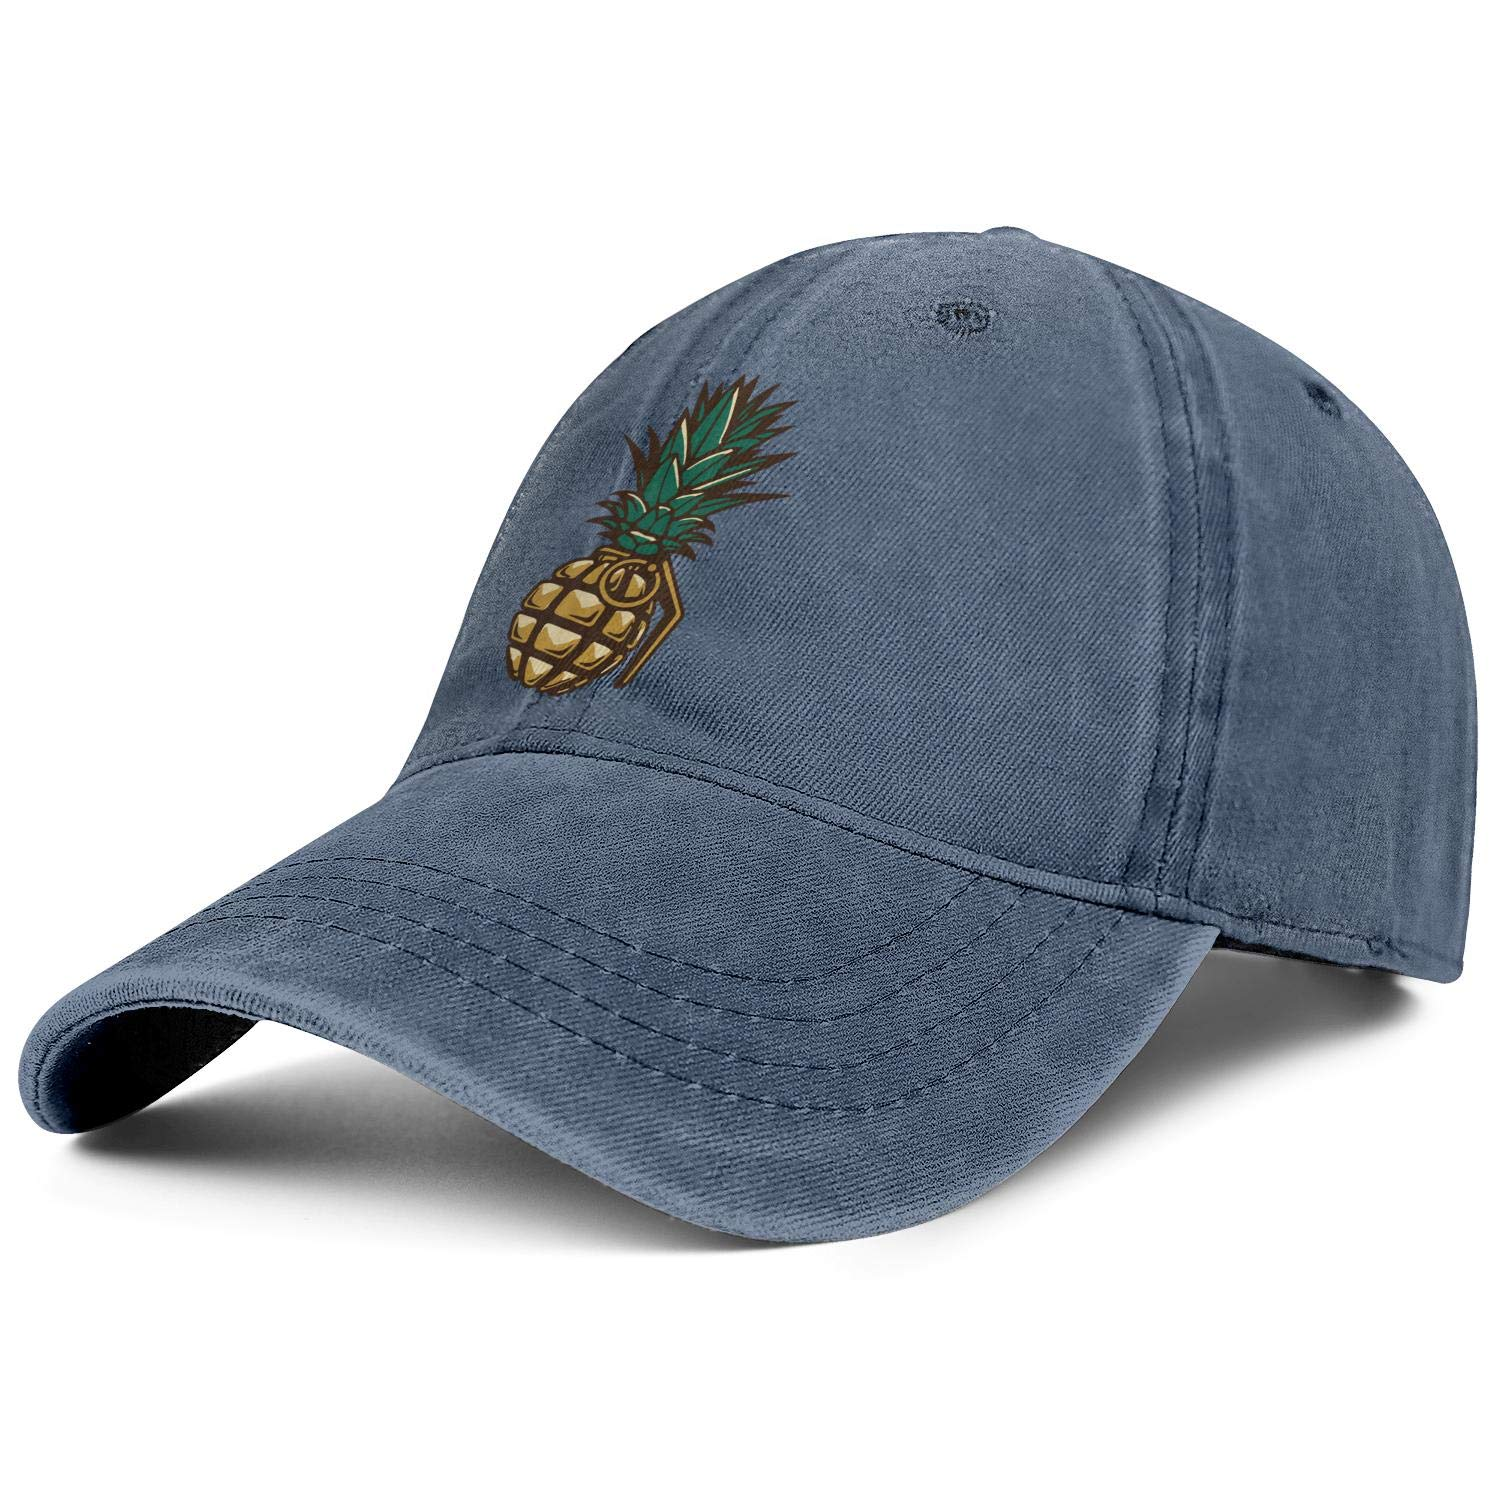 Pineapple Gold with Grenade Shape Unisex Baseball Cap Polyester Fishing Caps Adjustable Trucker Caps Dad-Hat